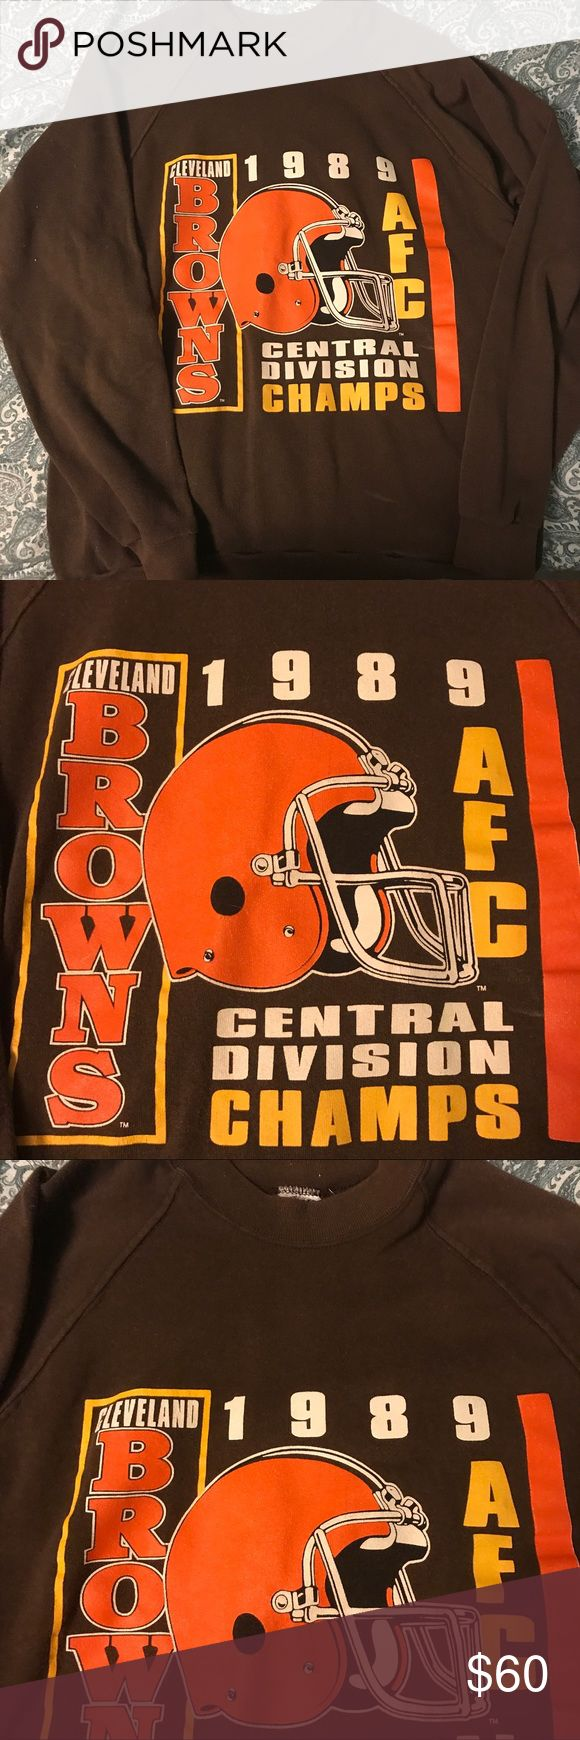 Vintage Cleveland Browns crew neck ✨✨✨ This is a one of a kind piece for any Cleveland Browns fan! 1989 AFC championship crew neck. Excellent vintage condition. It is worn in the best way that it is soft and snuggly. Wear this with some leggings for a comfy on trend look. No tag but fits like a large. Would fit all sizes up to XL depending on the look you're going for! NFL Tops Sweatshirts & Hoodies